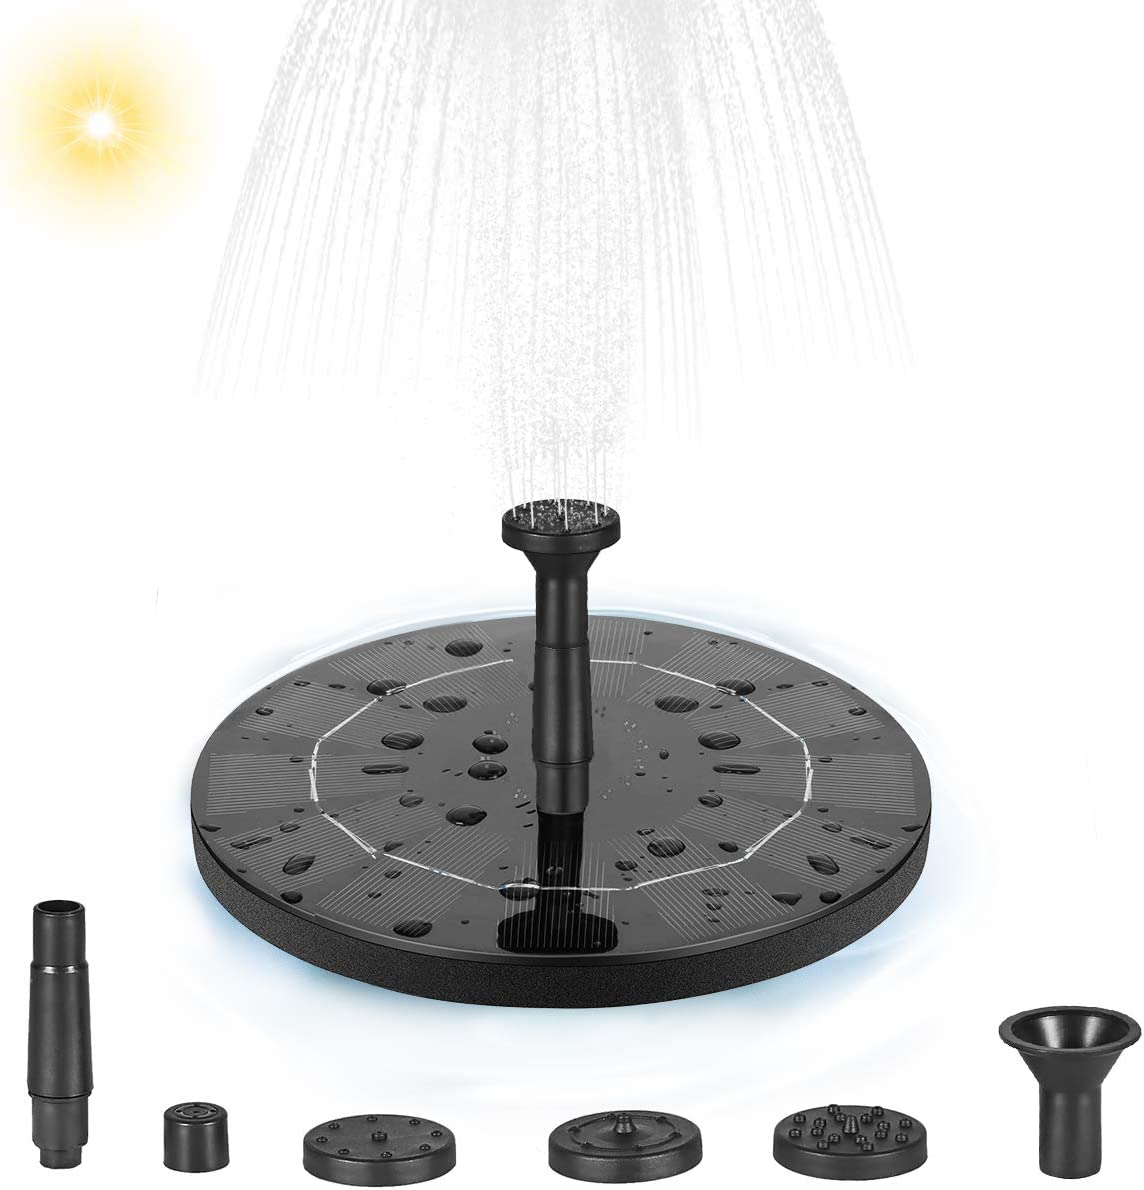 LOFTER Solar Fountain Pump for Bird Bath, 1.4W Solar Powered Fountain Water Pump Kit, Free Standing Outdoor for Garden and Patio